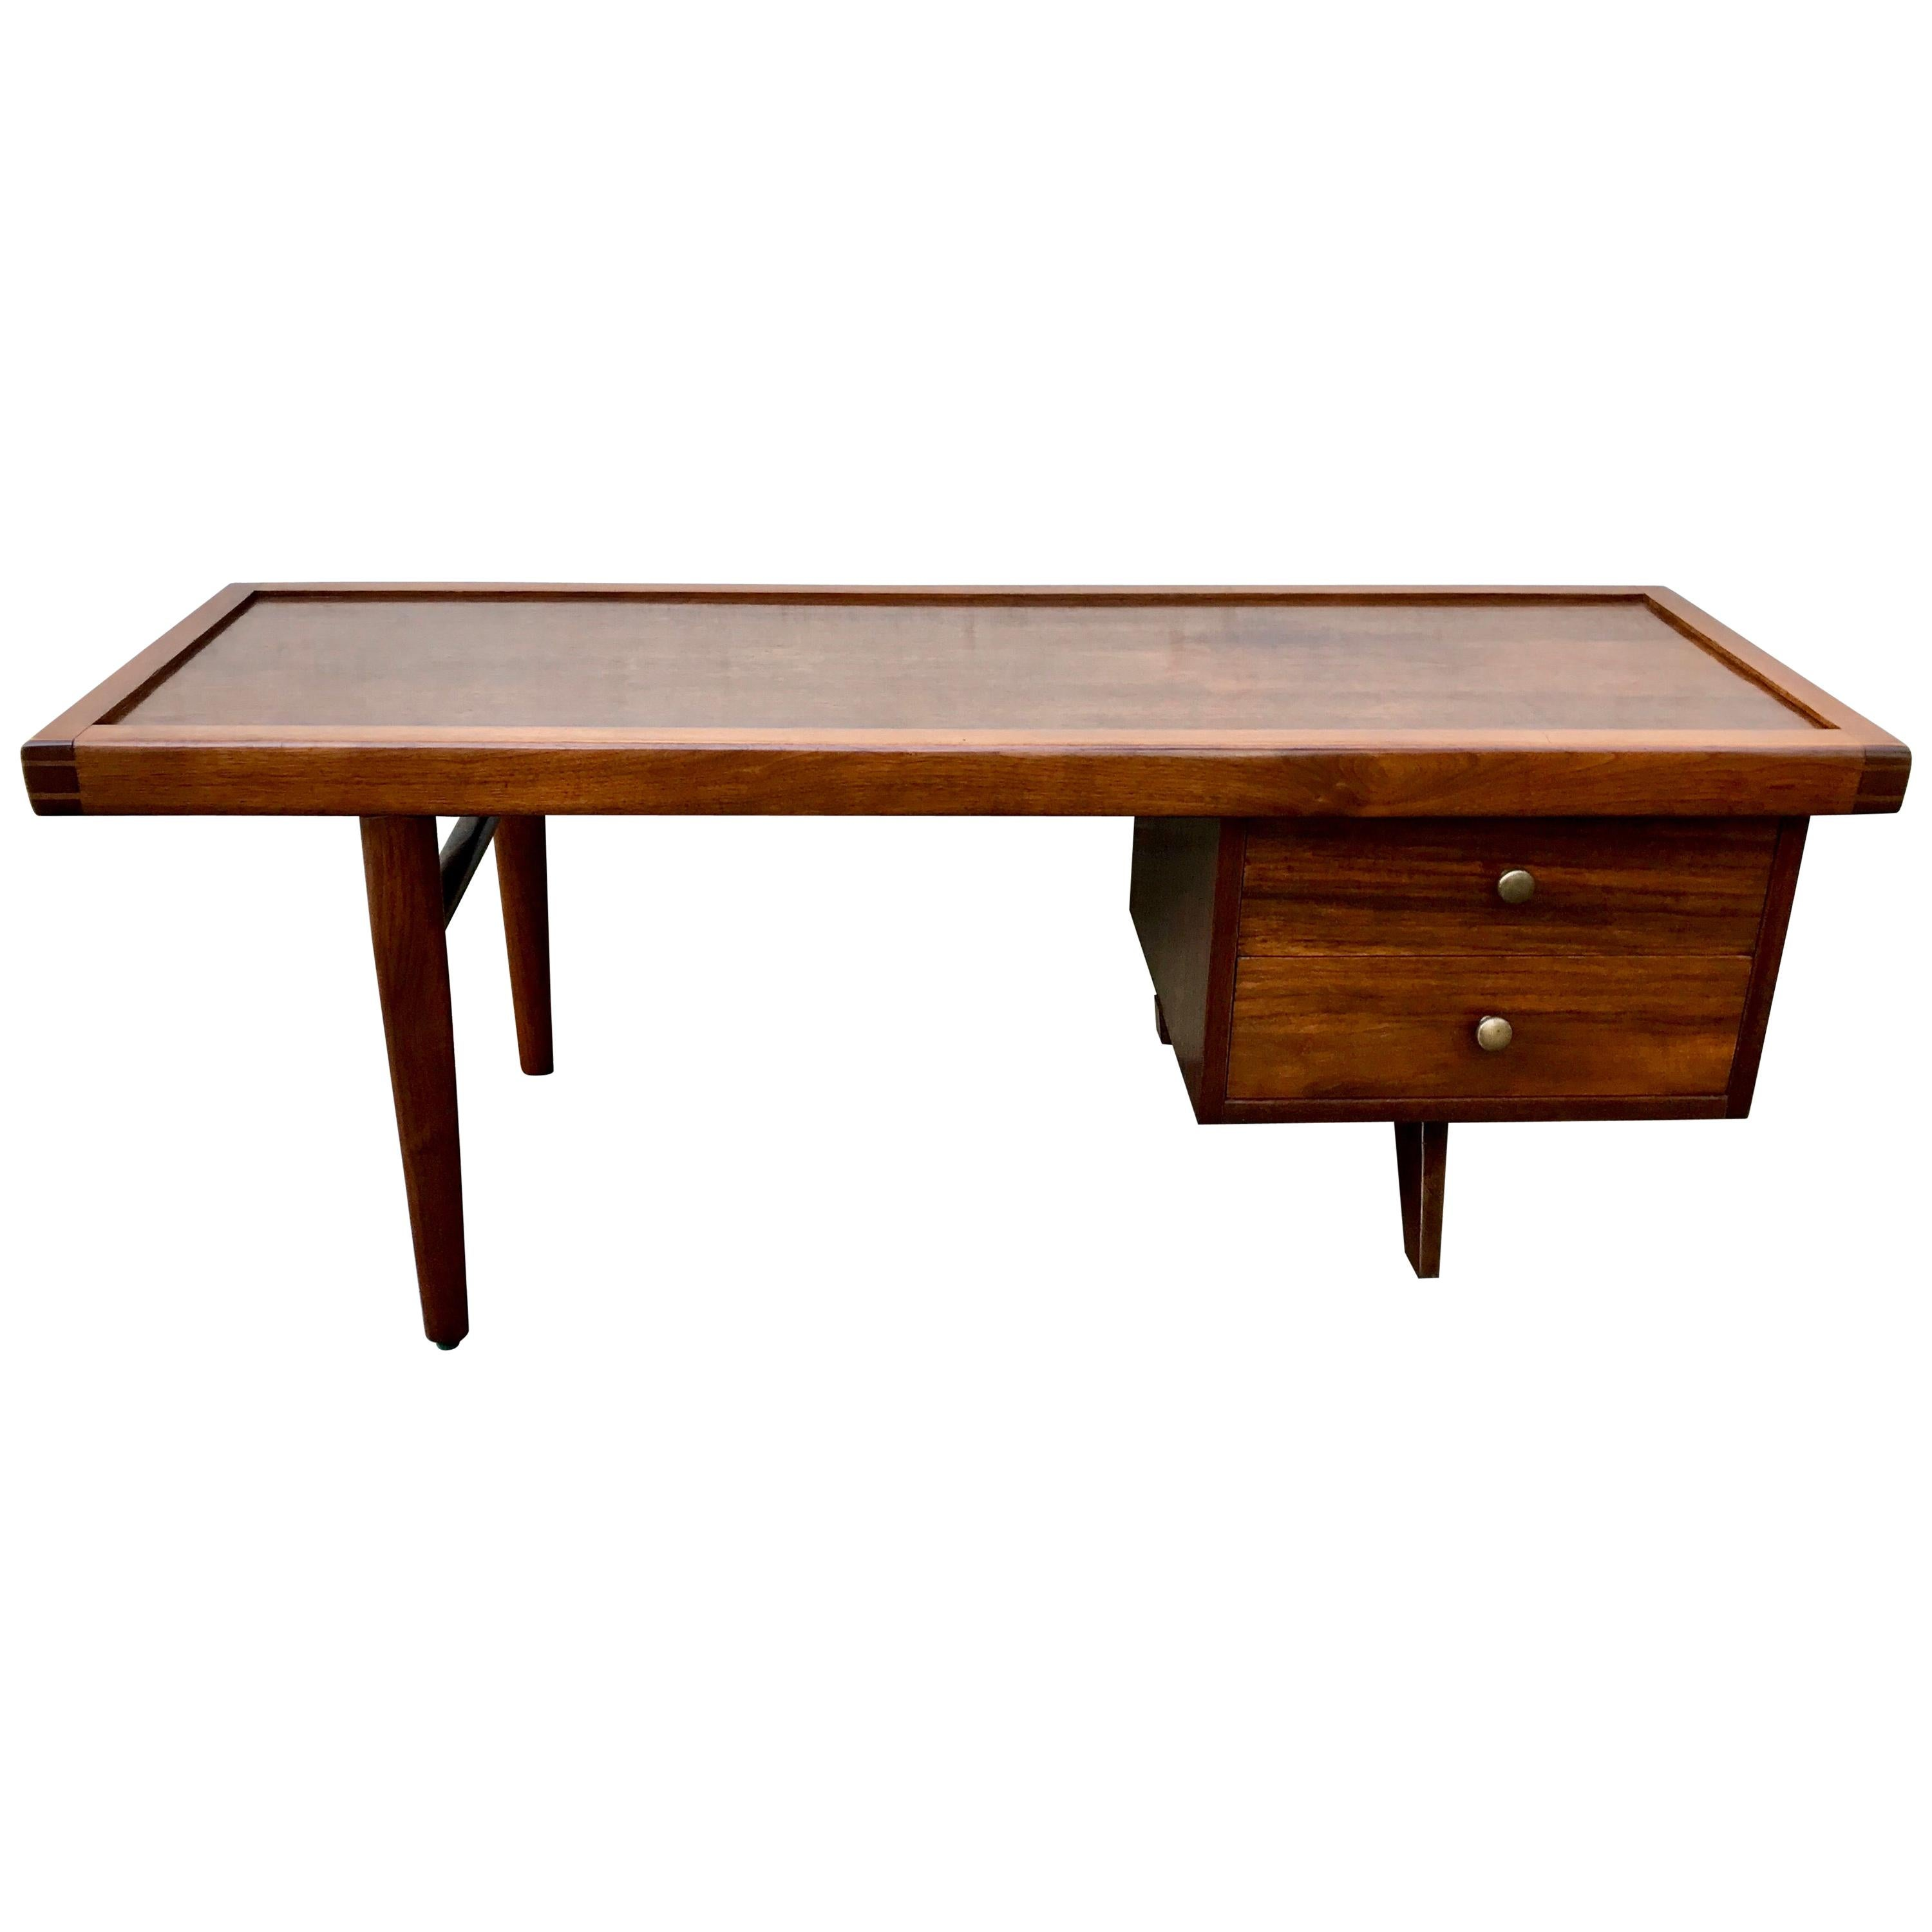 George Nakashima Tables 37 For Sale At 1stdibs